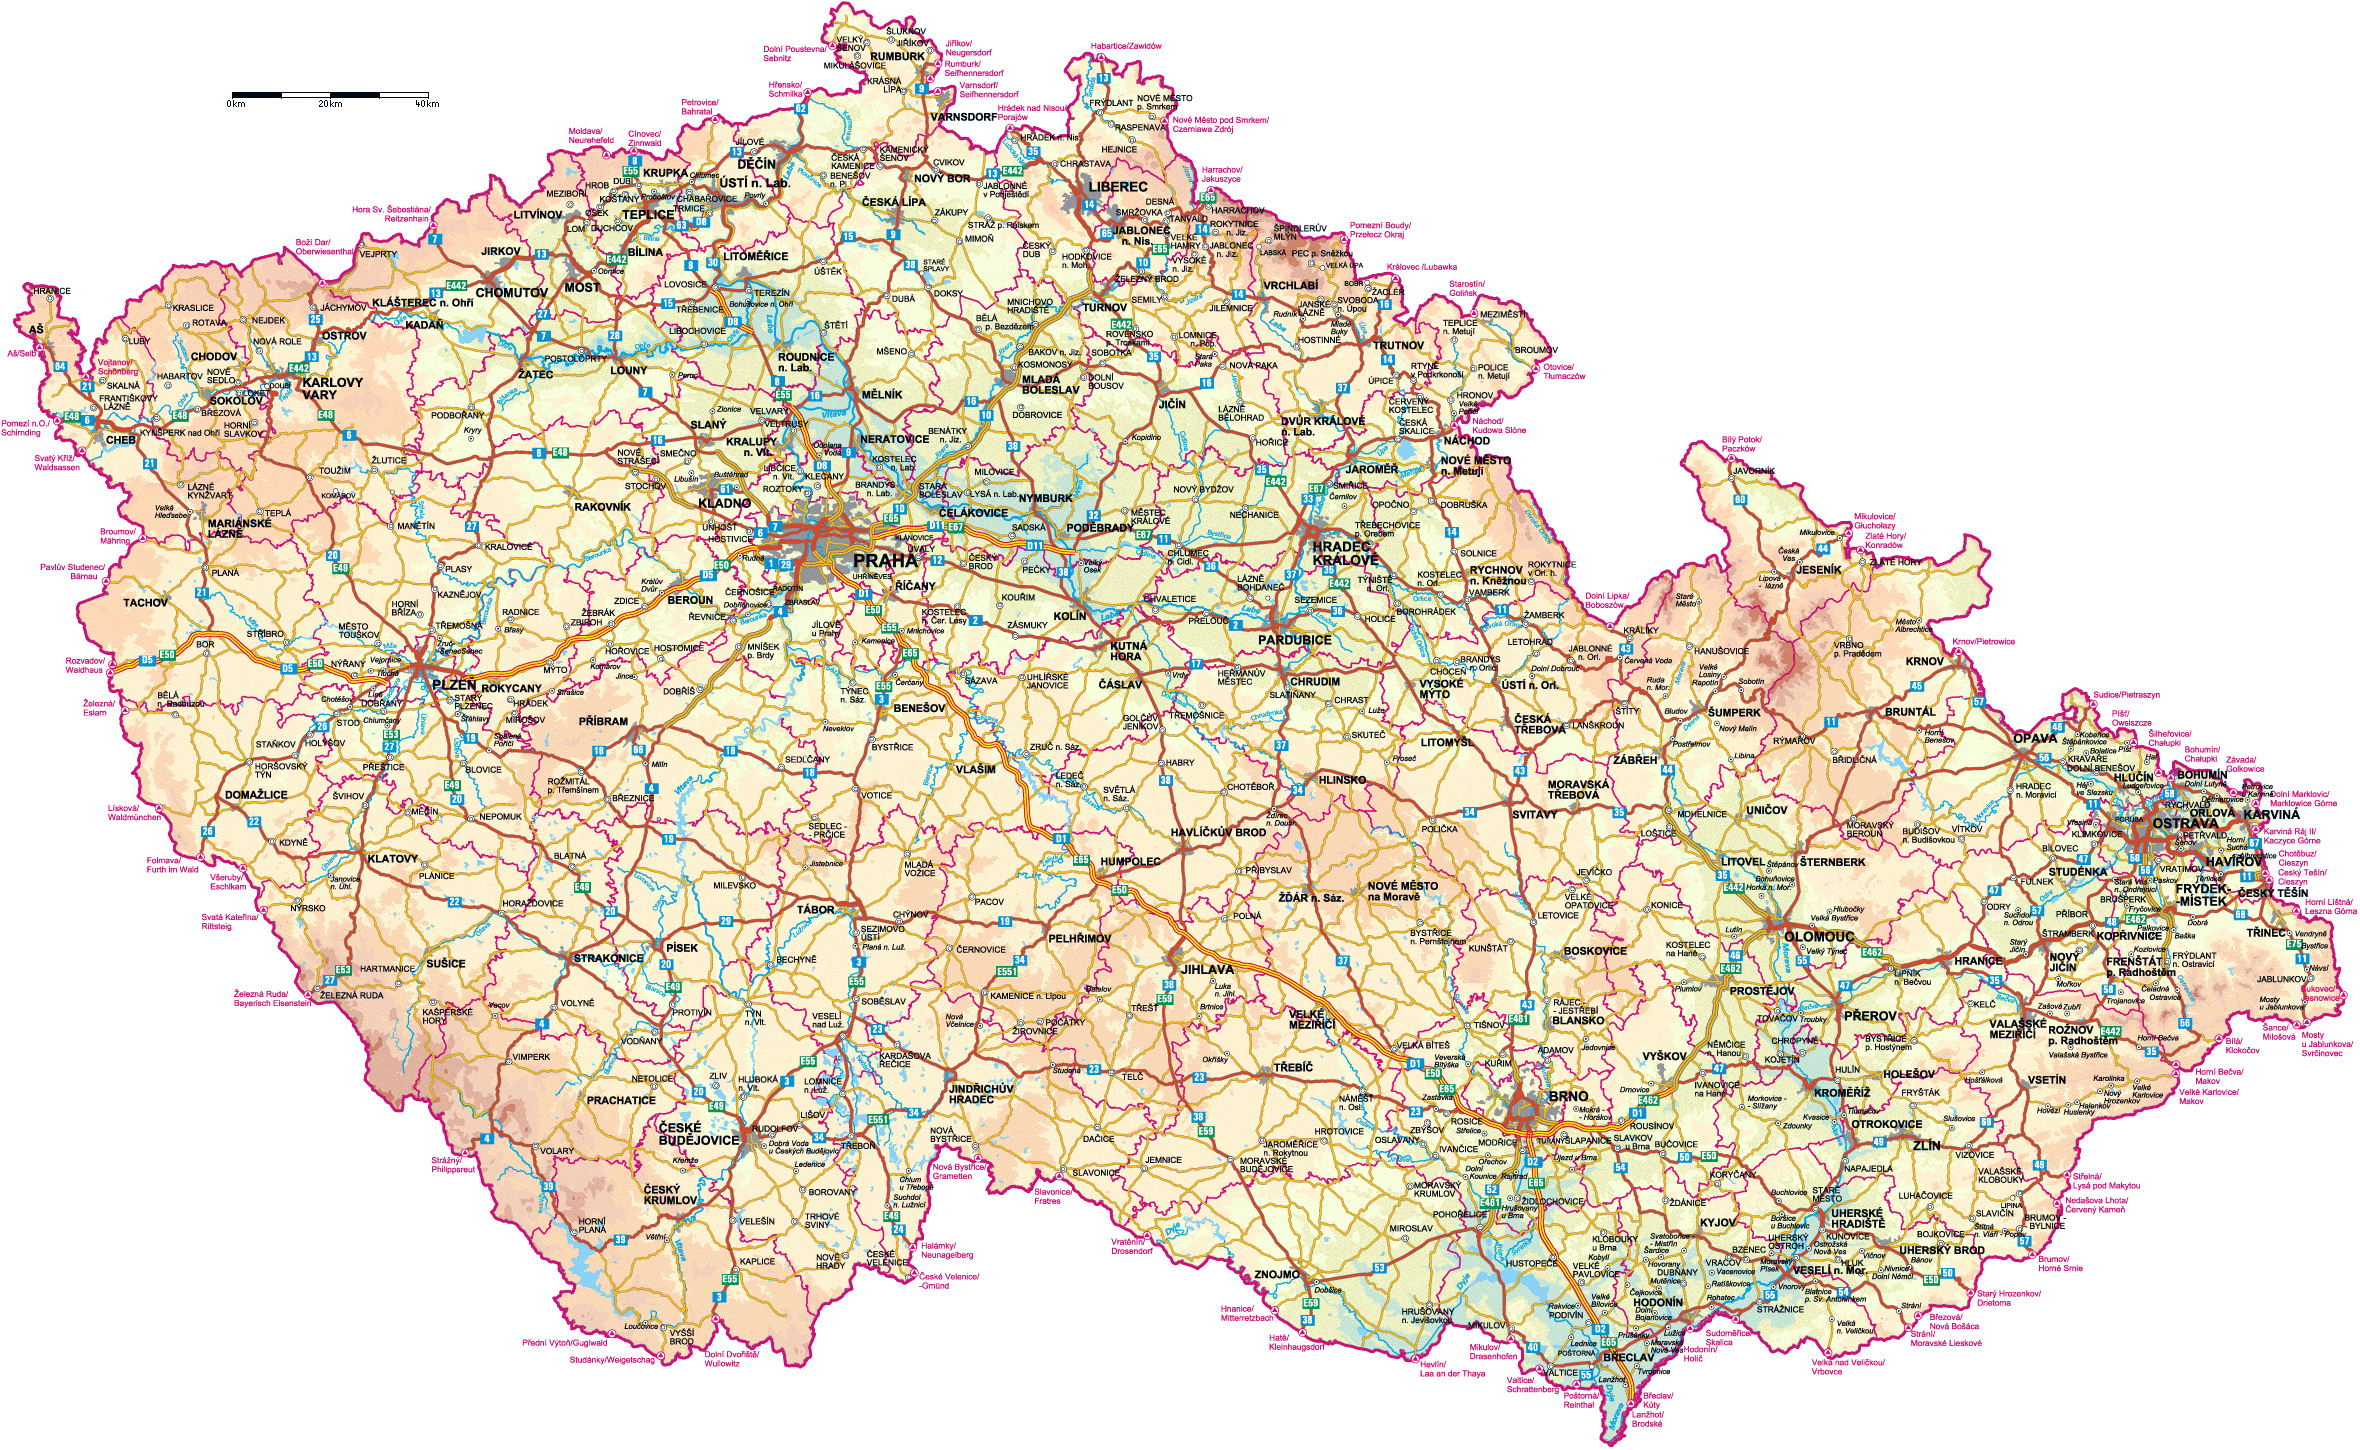 As Czech Republic  city photos : ... .comLarge detailed road and physical map of Czech Republic with all